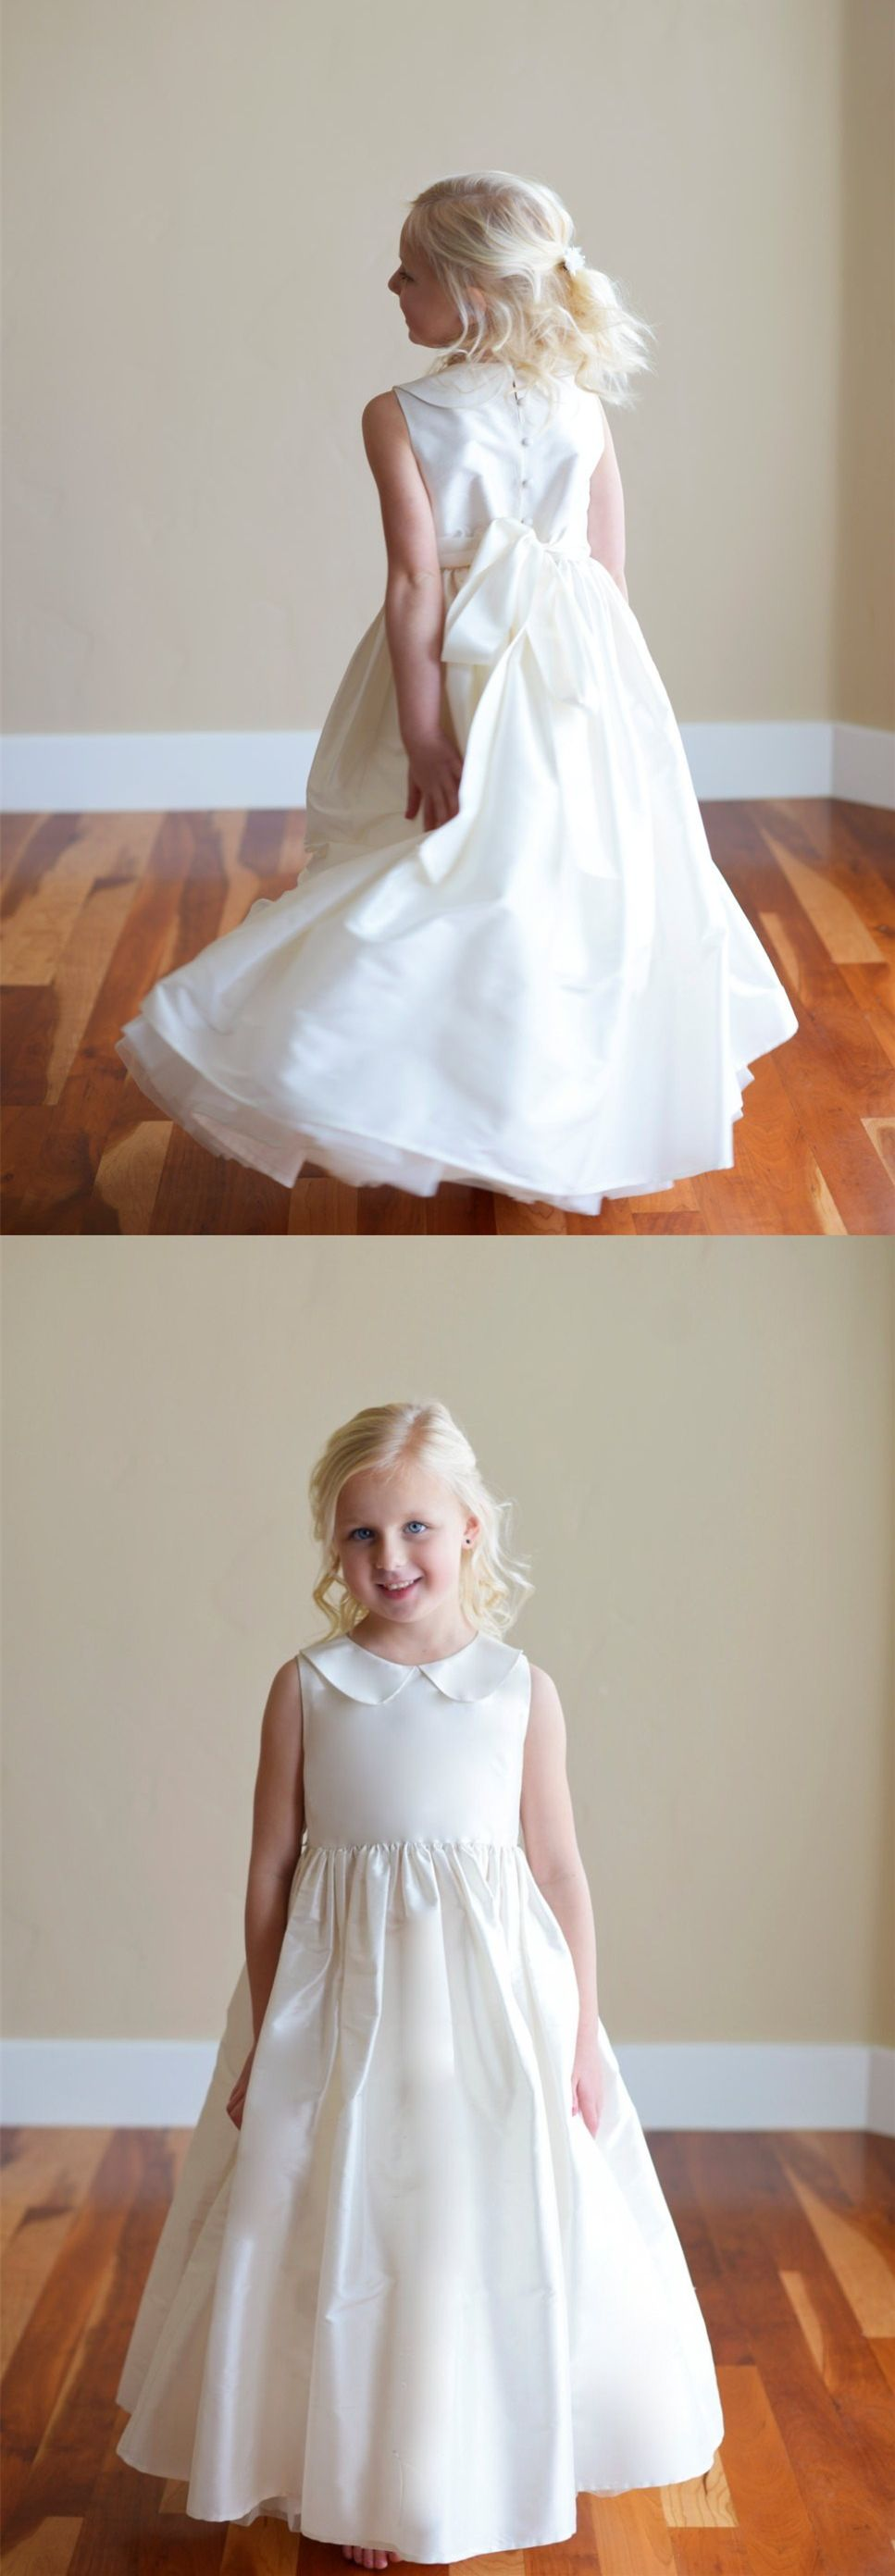 Flower girl dresses chic fashion wedding party dresses for girls